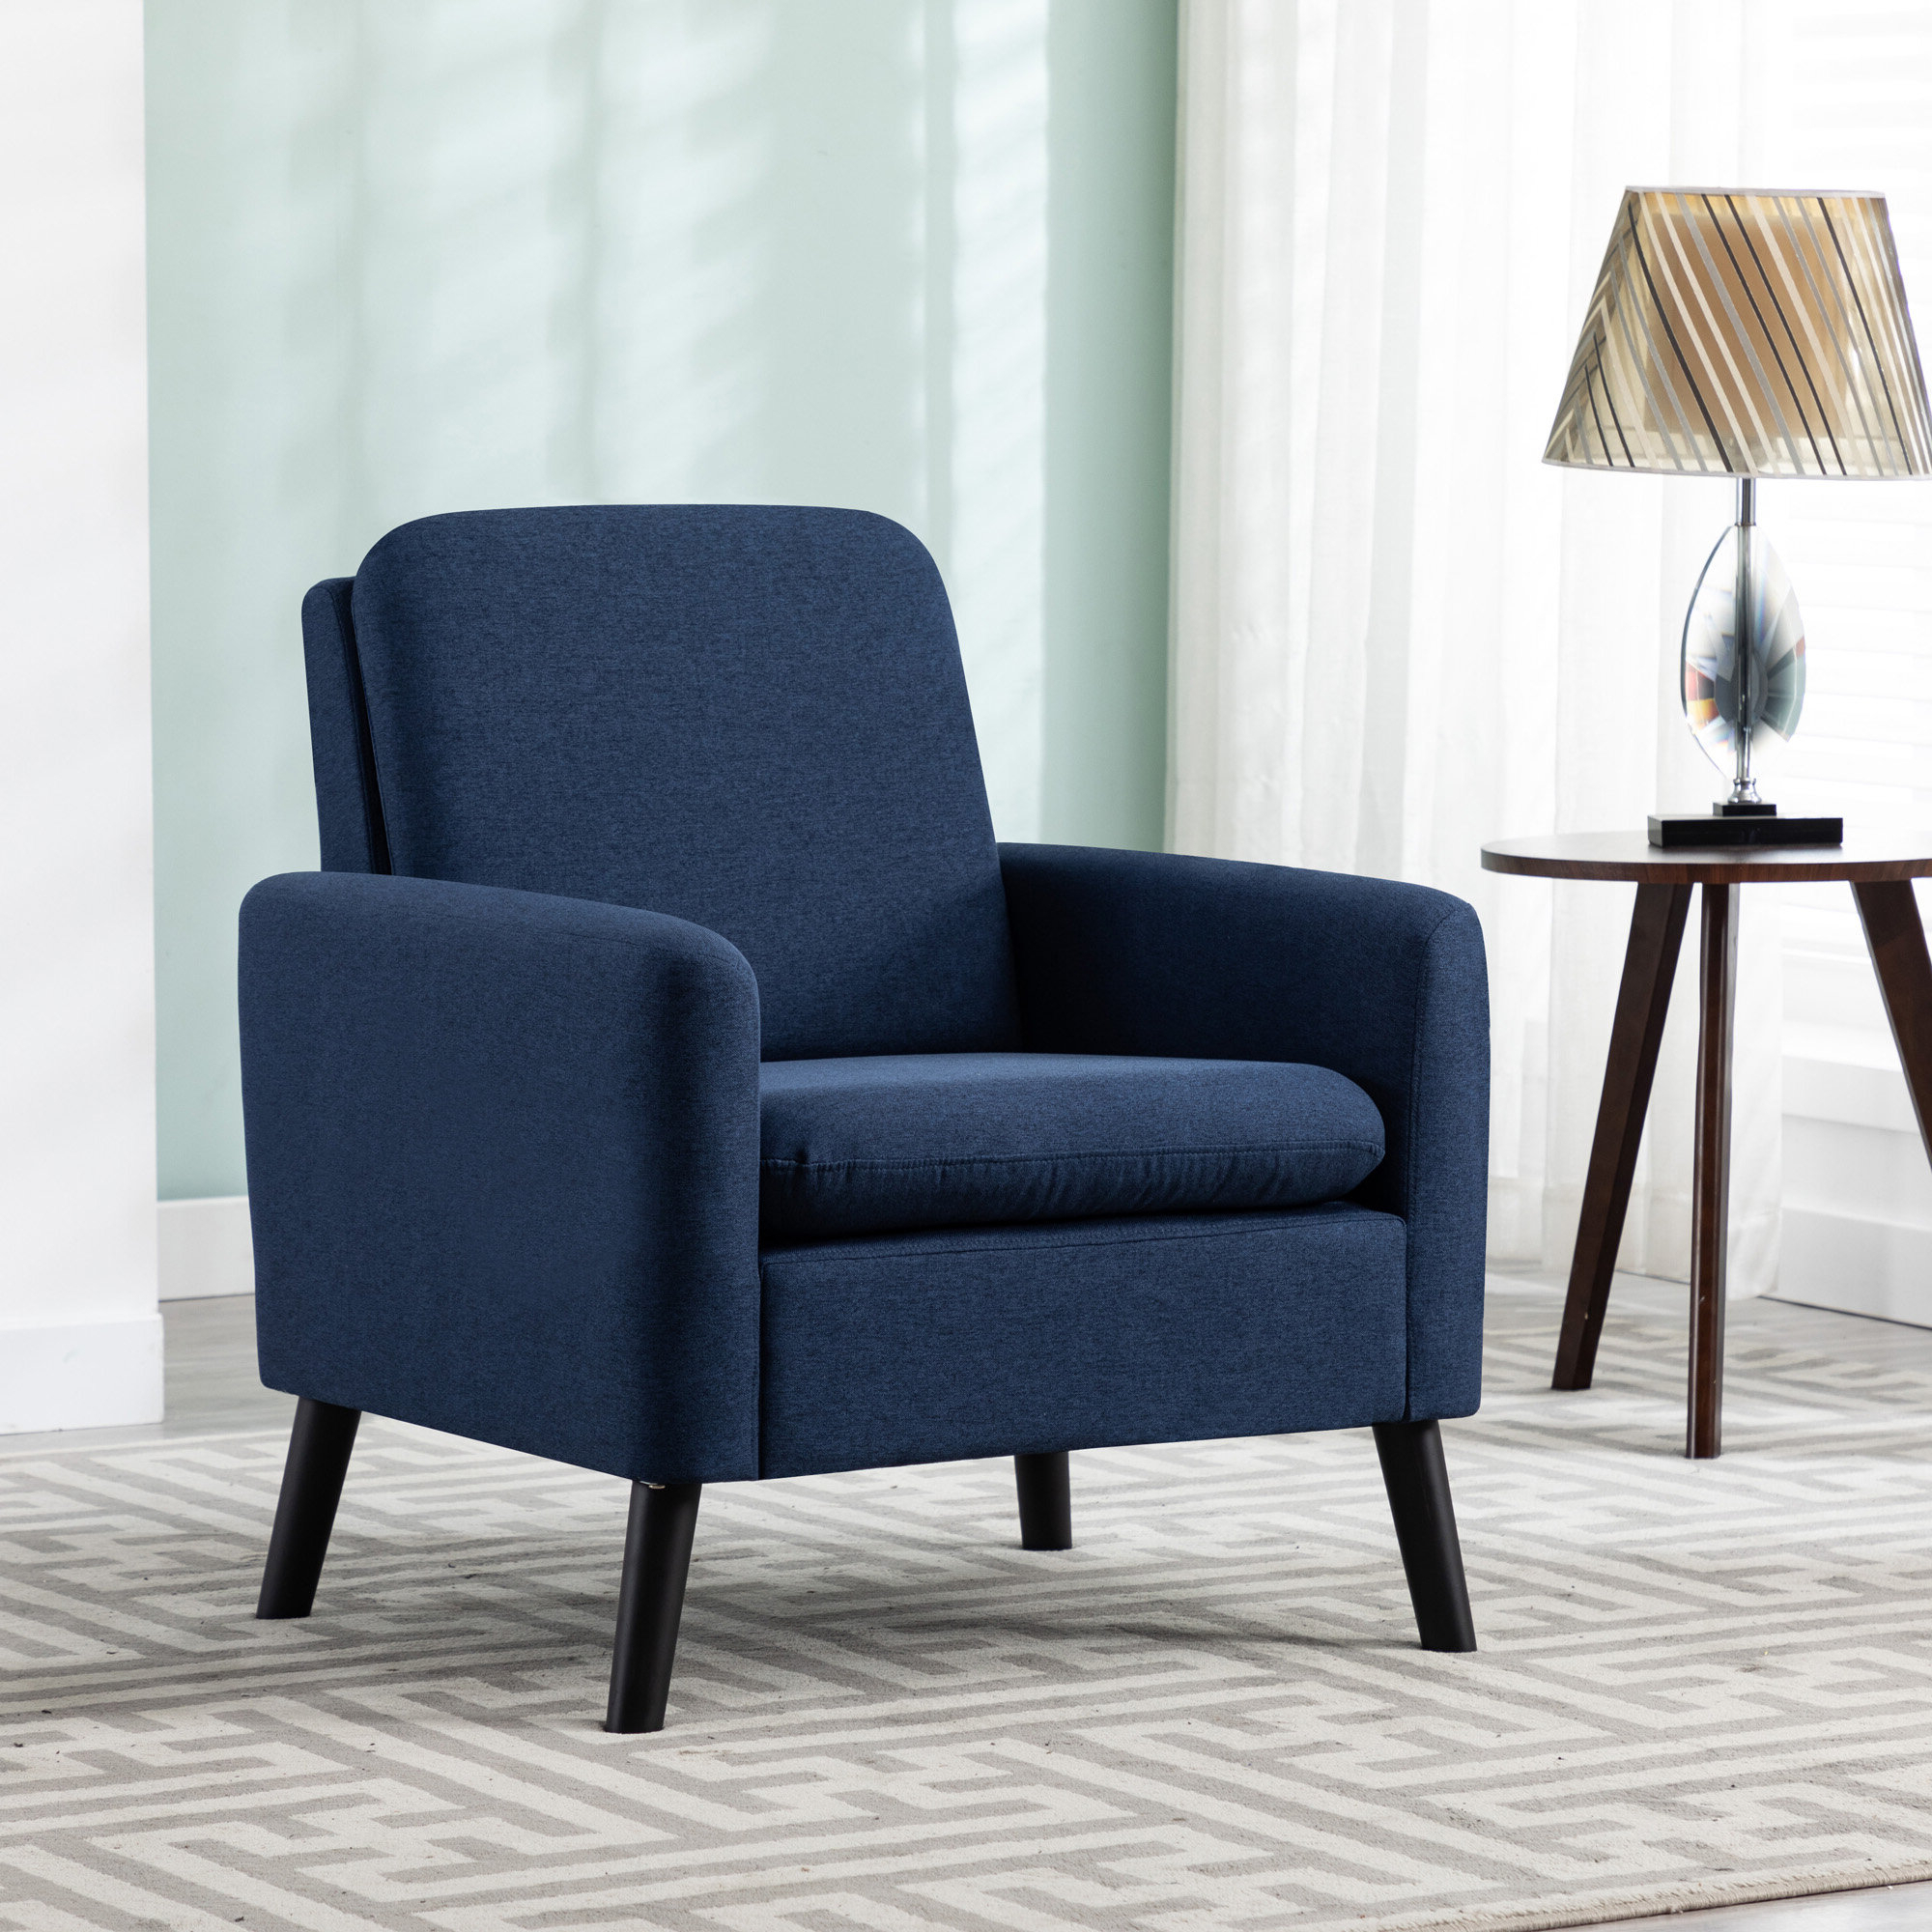 Arm Modern & Contemporary Accent Chairs You'll Love In 2021 Intended For Well Known Lakeville Armchairs (View 9 of 20)